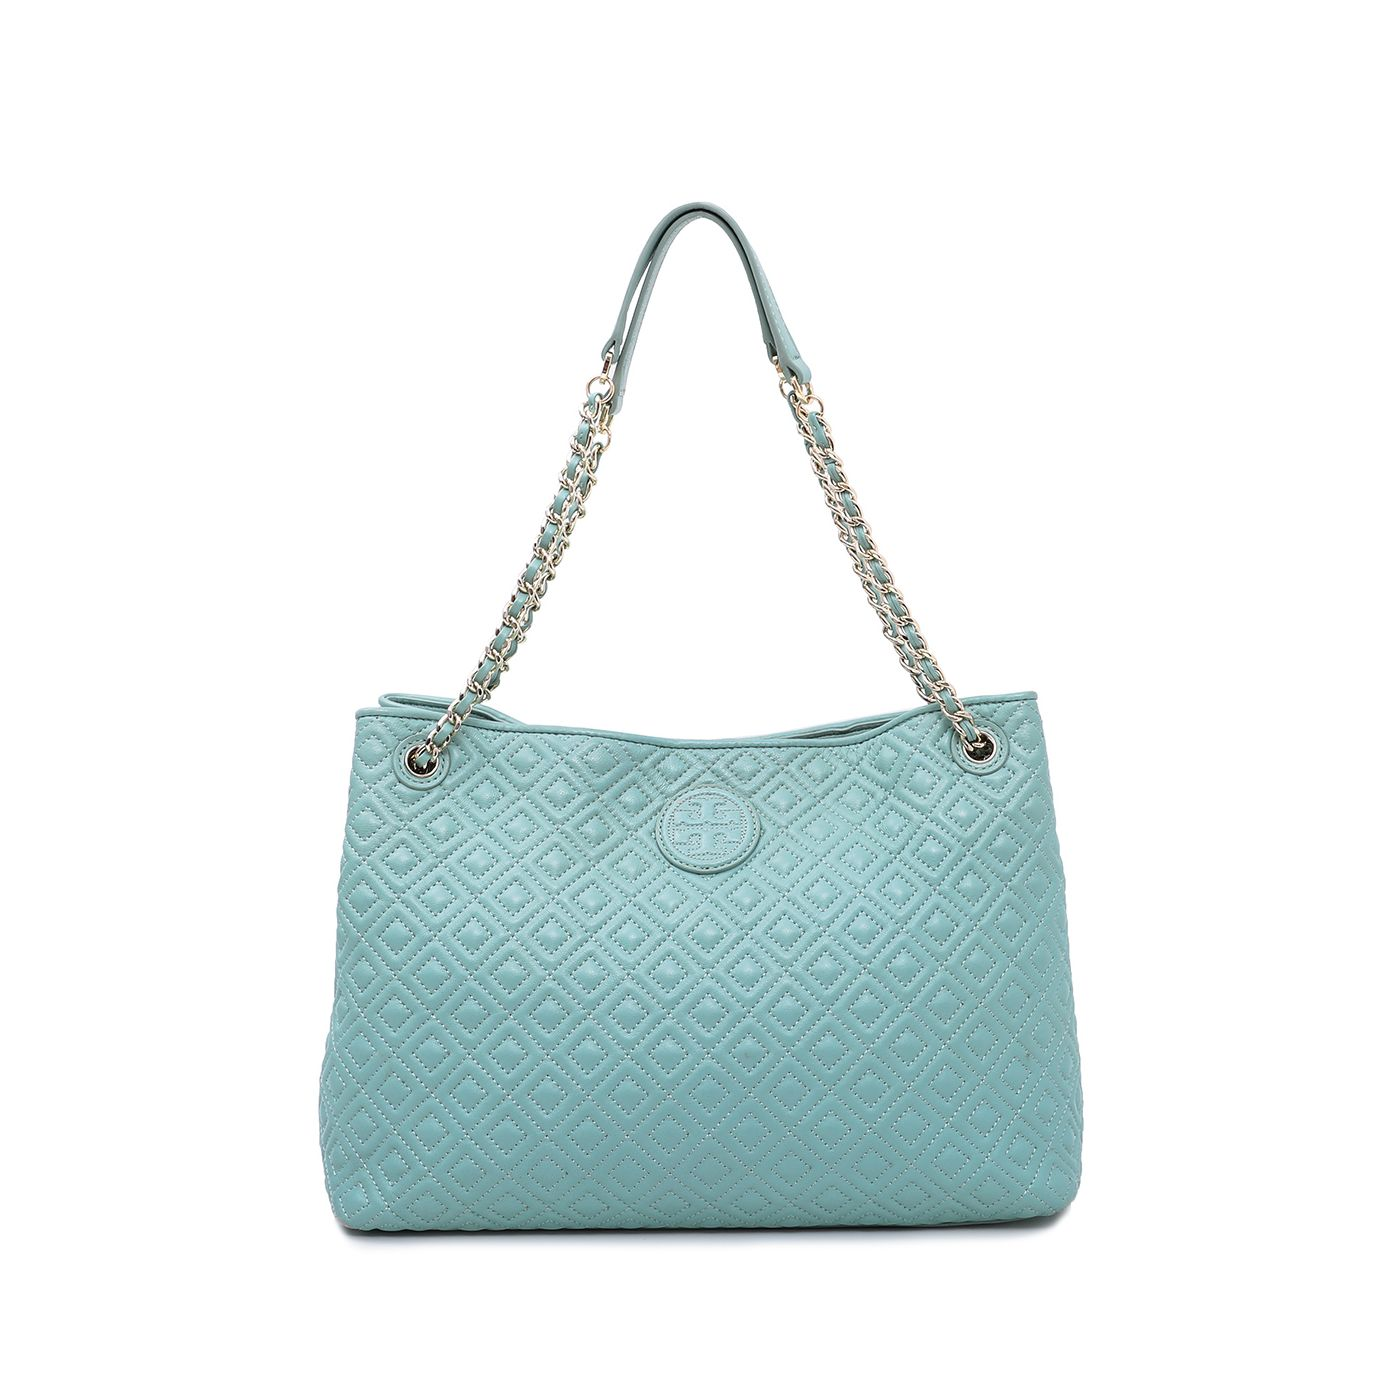 Tory Burch Mint Green Marion Shopping Tote Bag